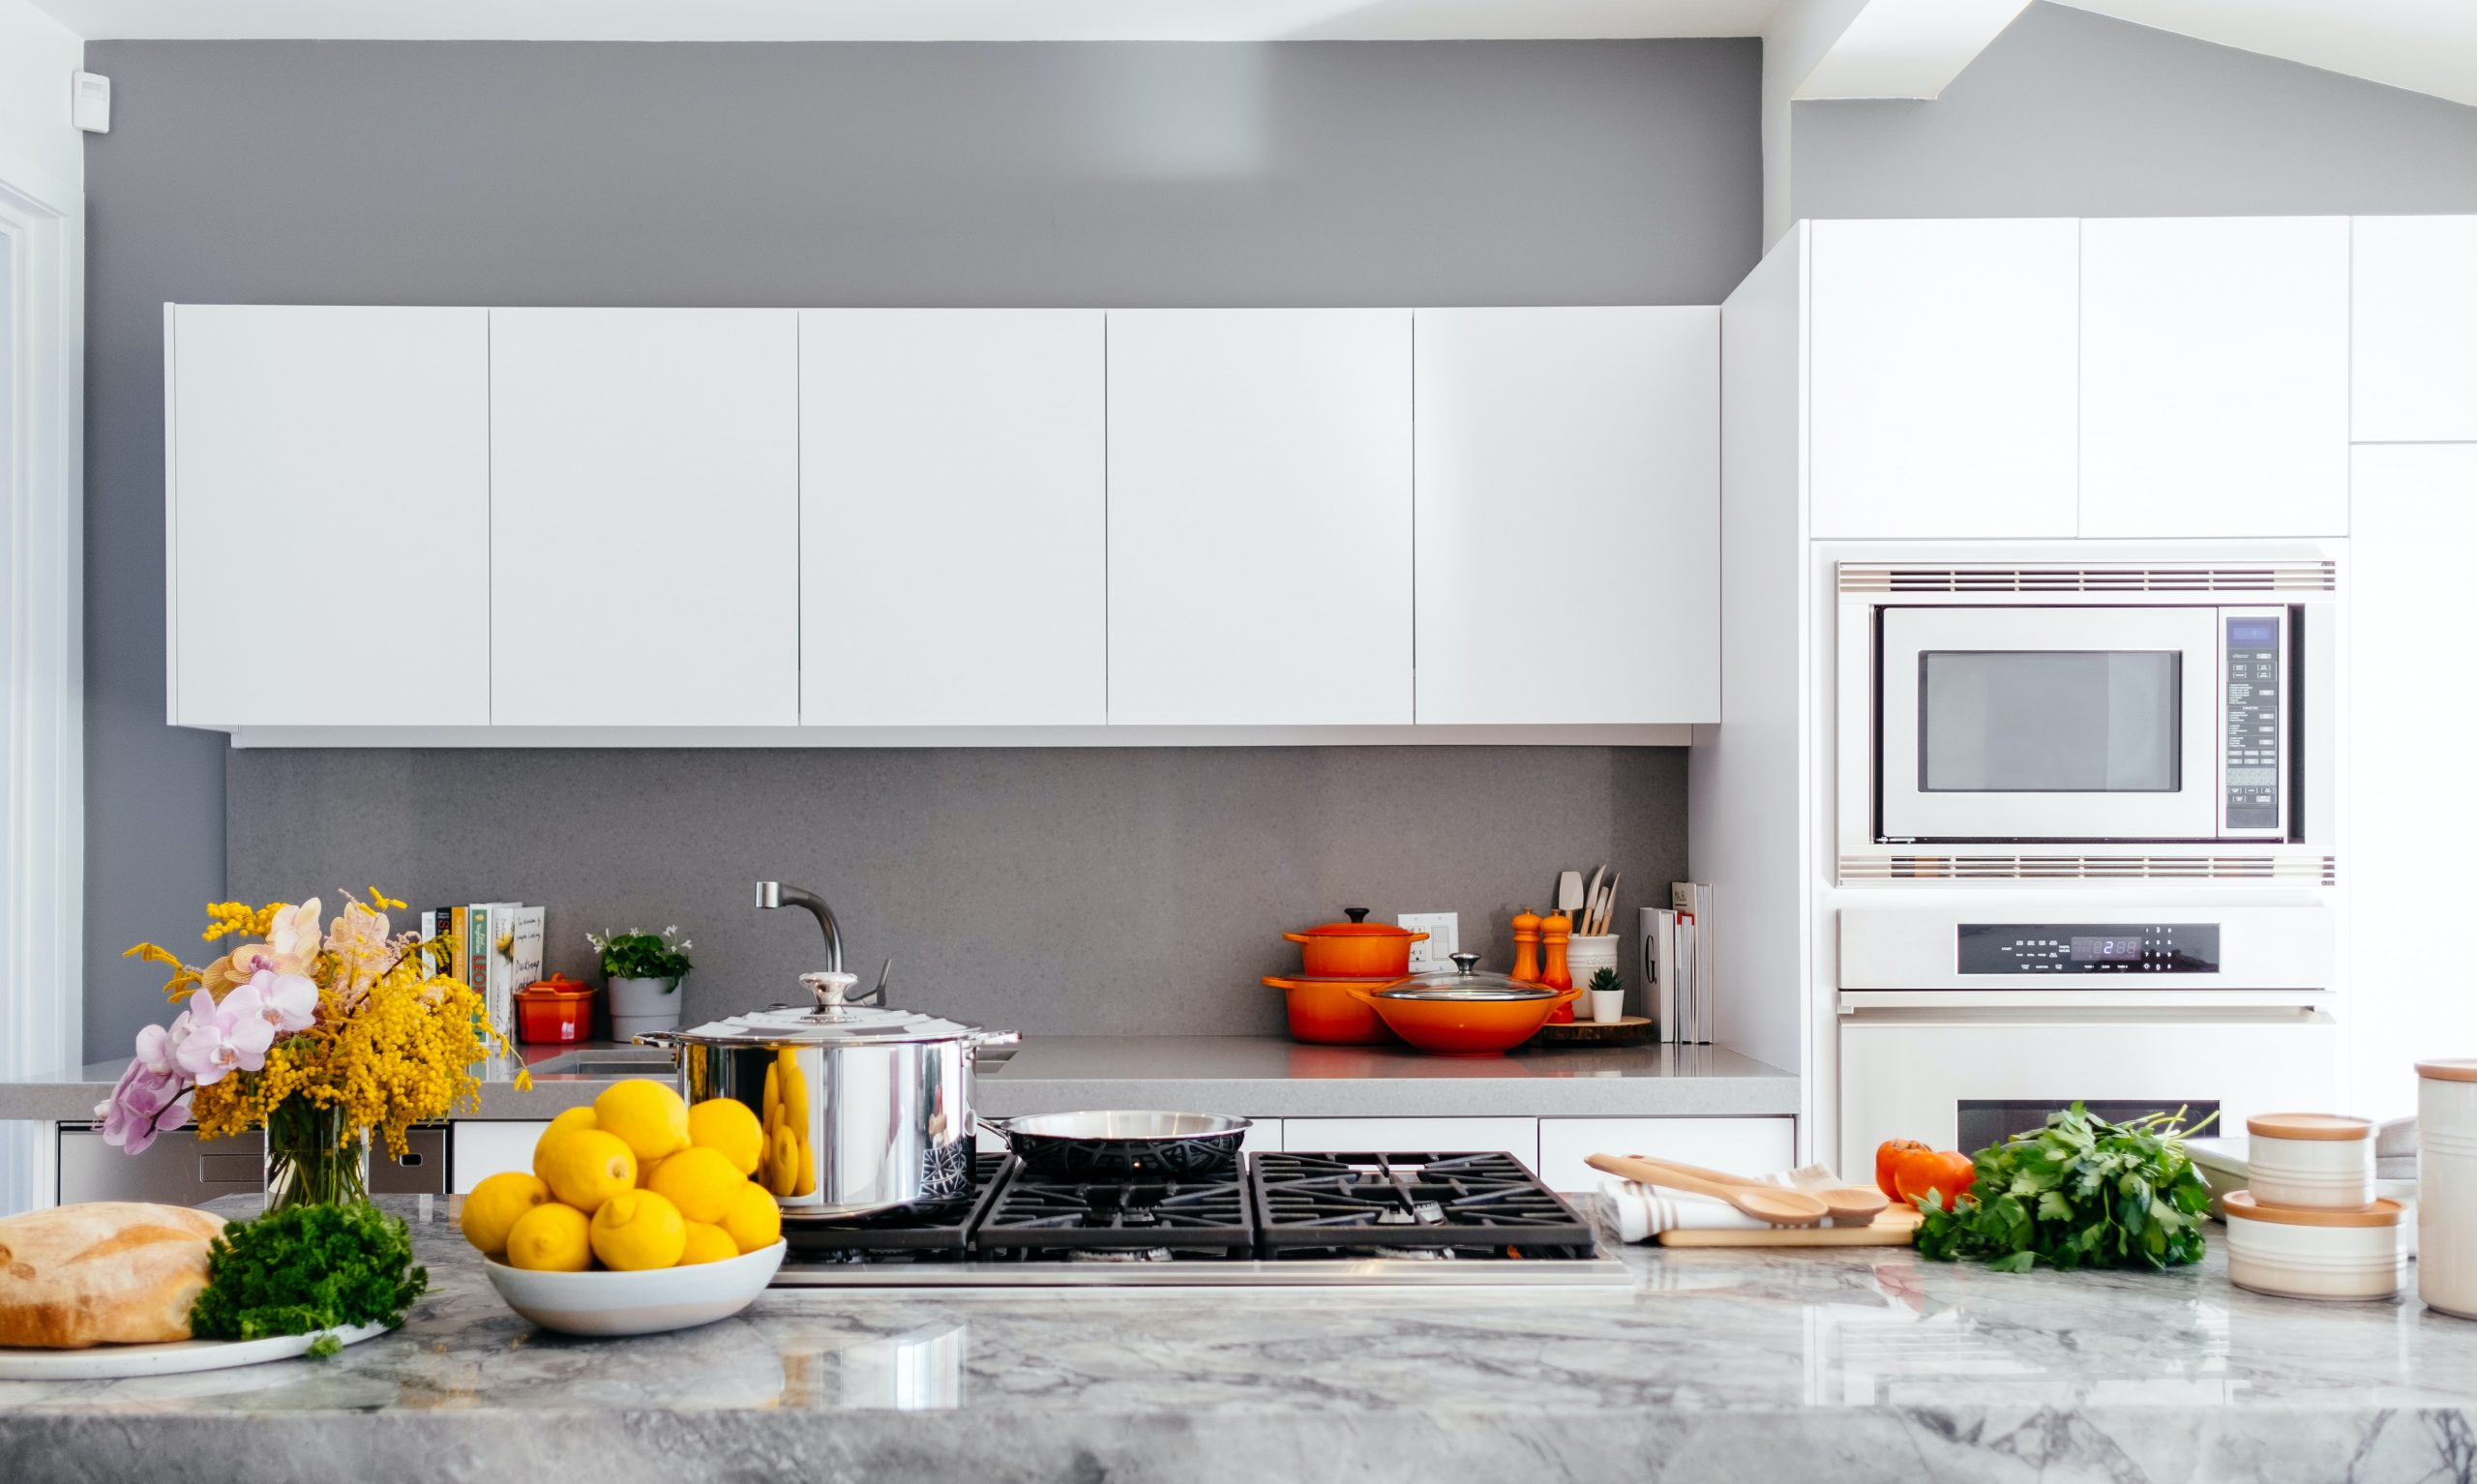 The Smart Home: What's in your kitchen?